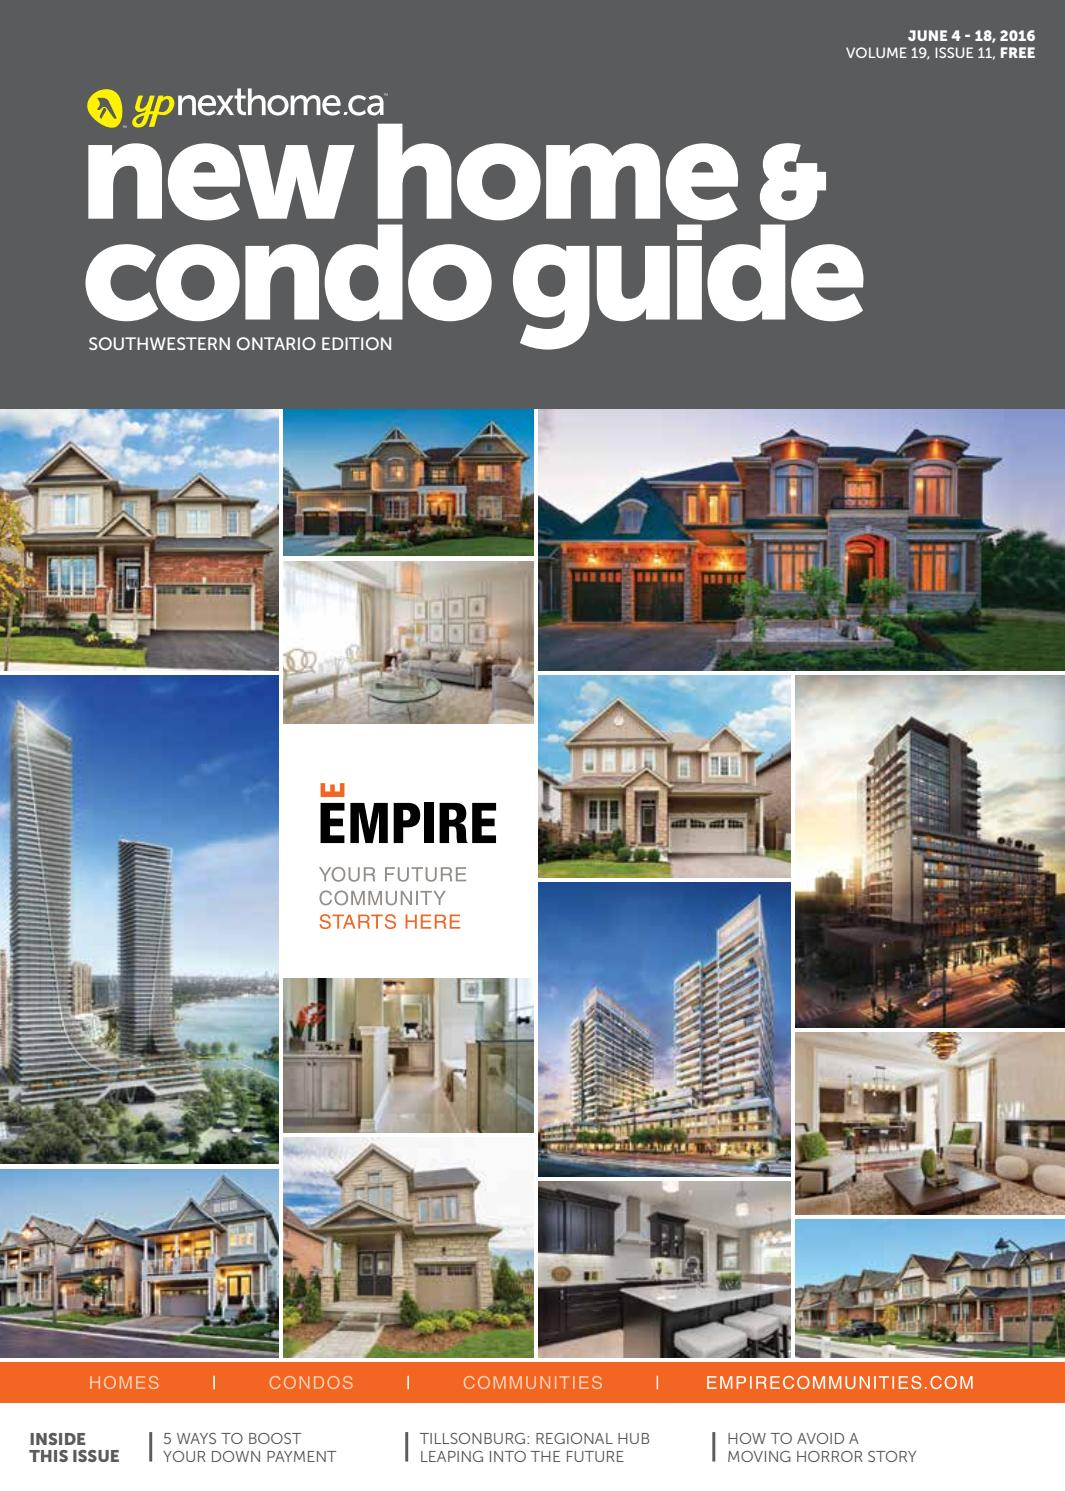 Southwestern Ontario New Home And Condo Guide Jun 04 2016 By